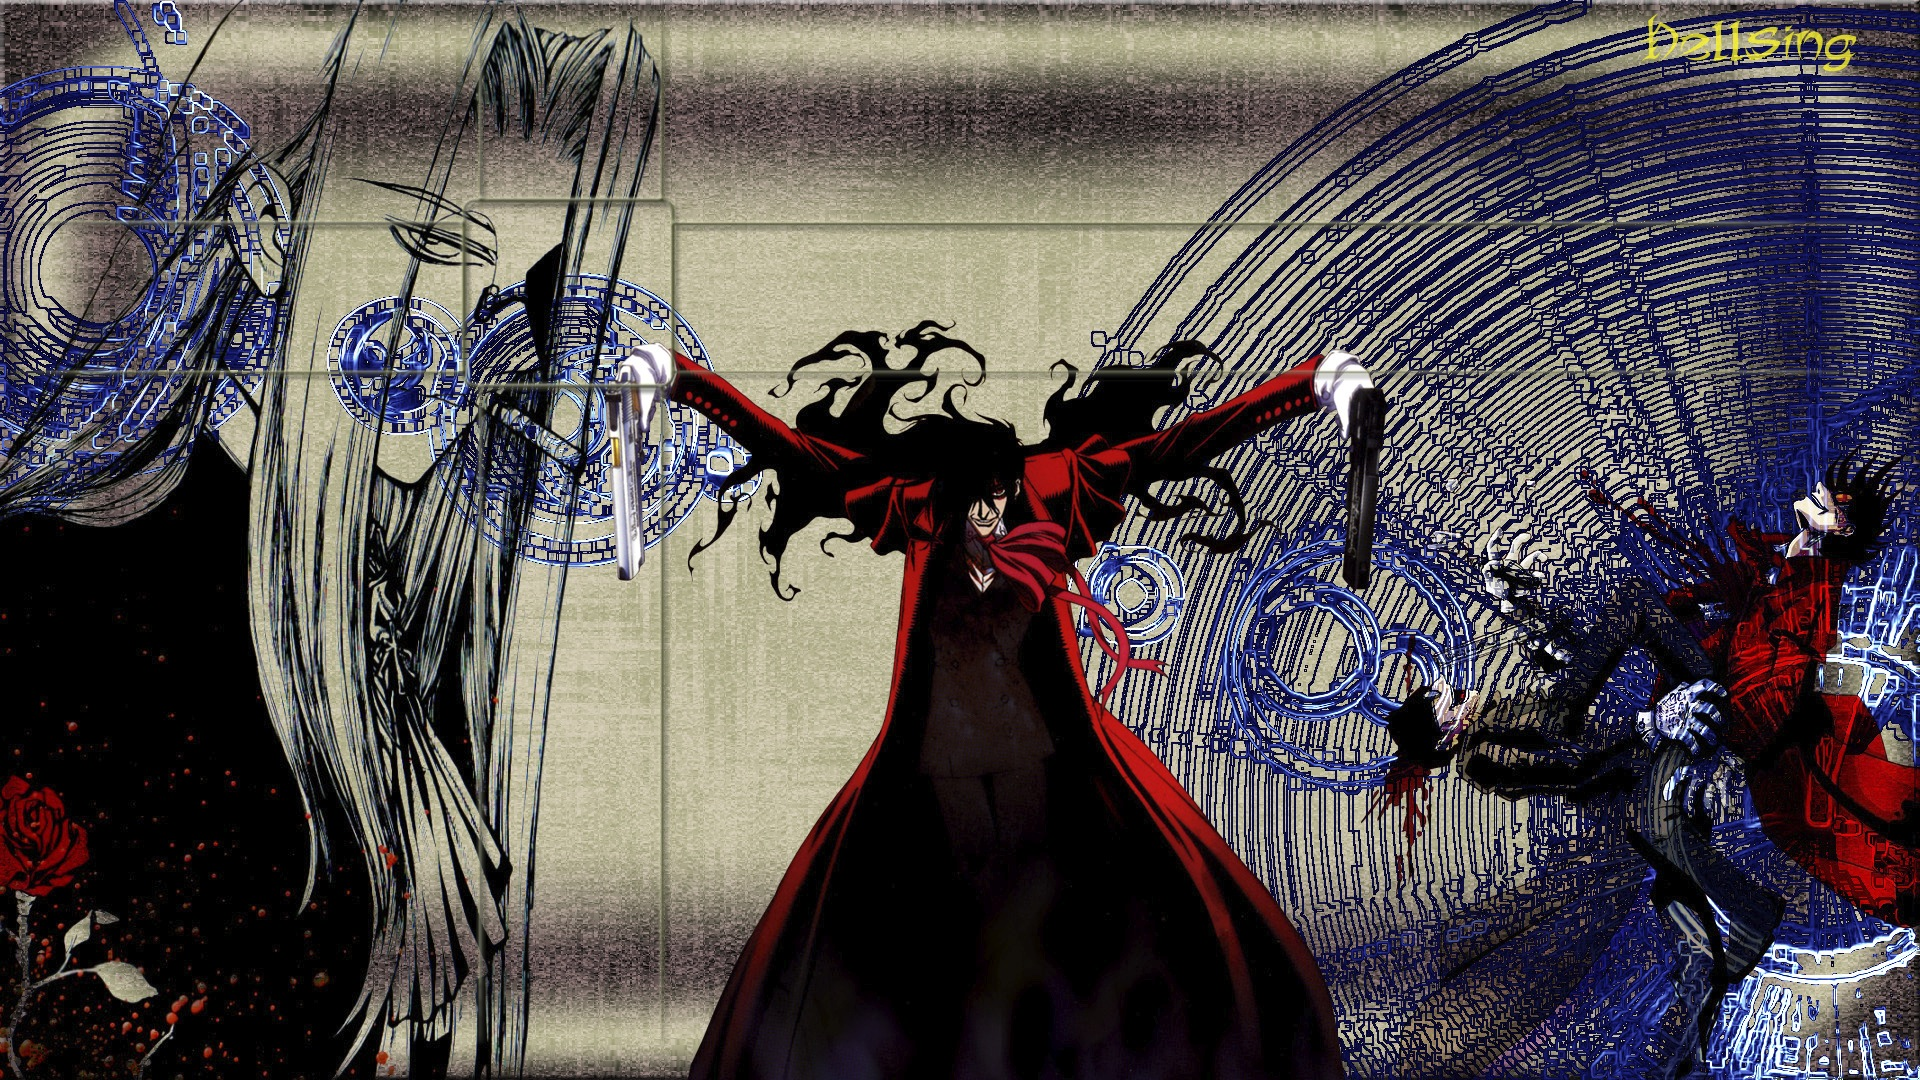 Hellsing full hd wallpaper and background image - Anime backgrounds hd 1920x1080 ...